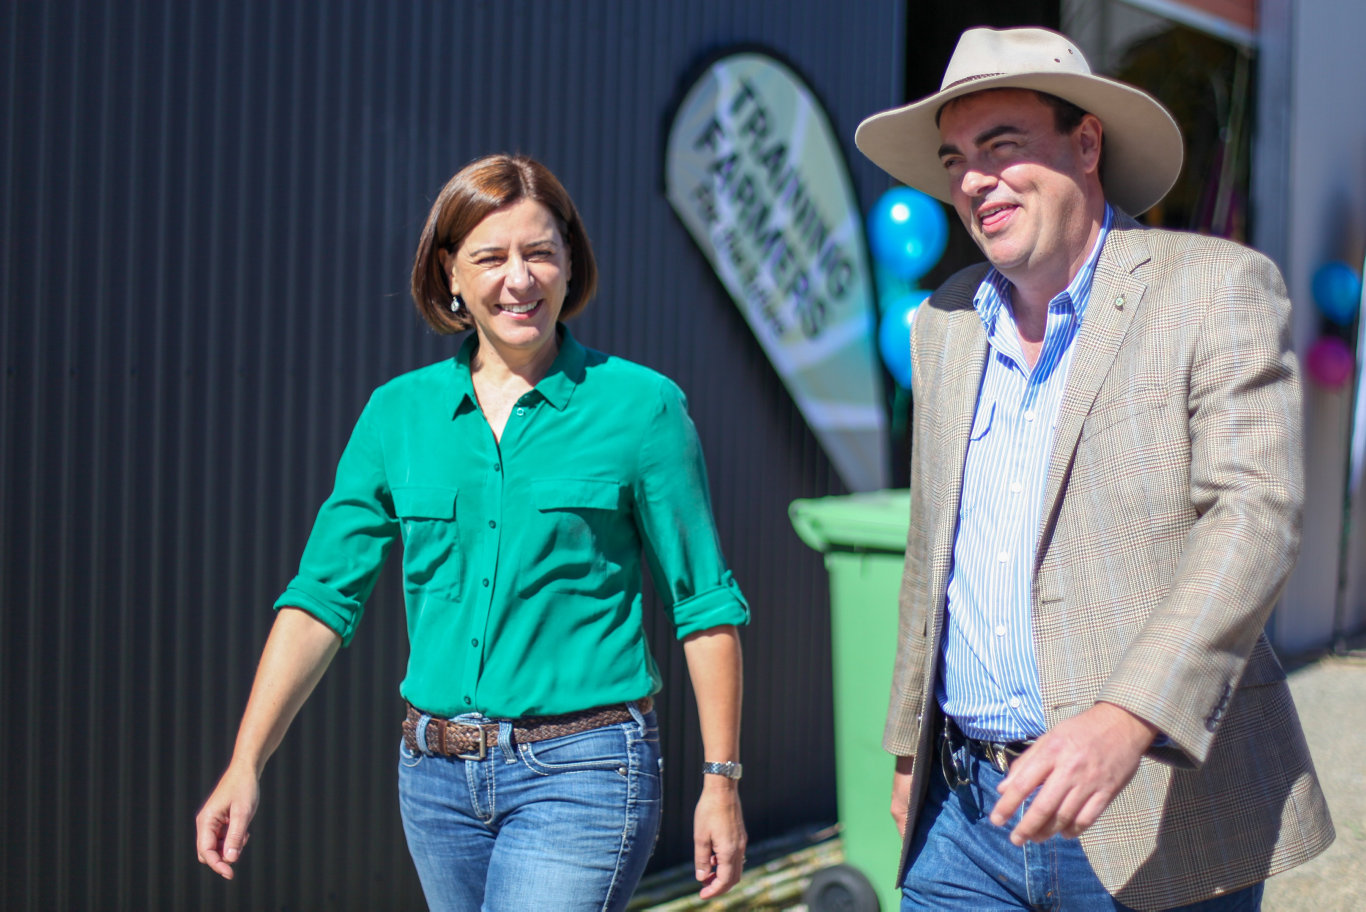 Jason Costigan and Deb Frecklington talk power prices at the 2018 Mackay Show.